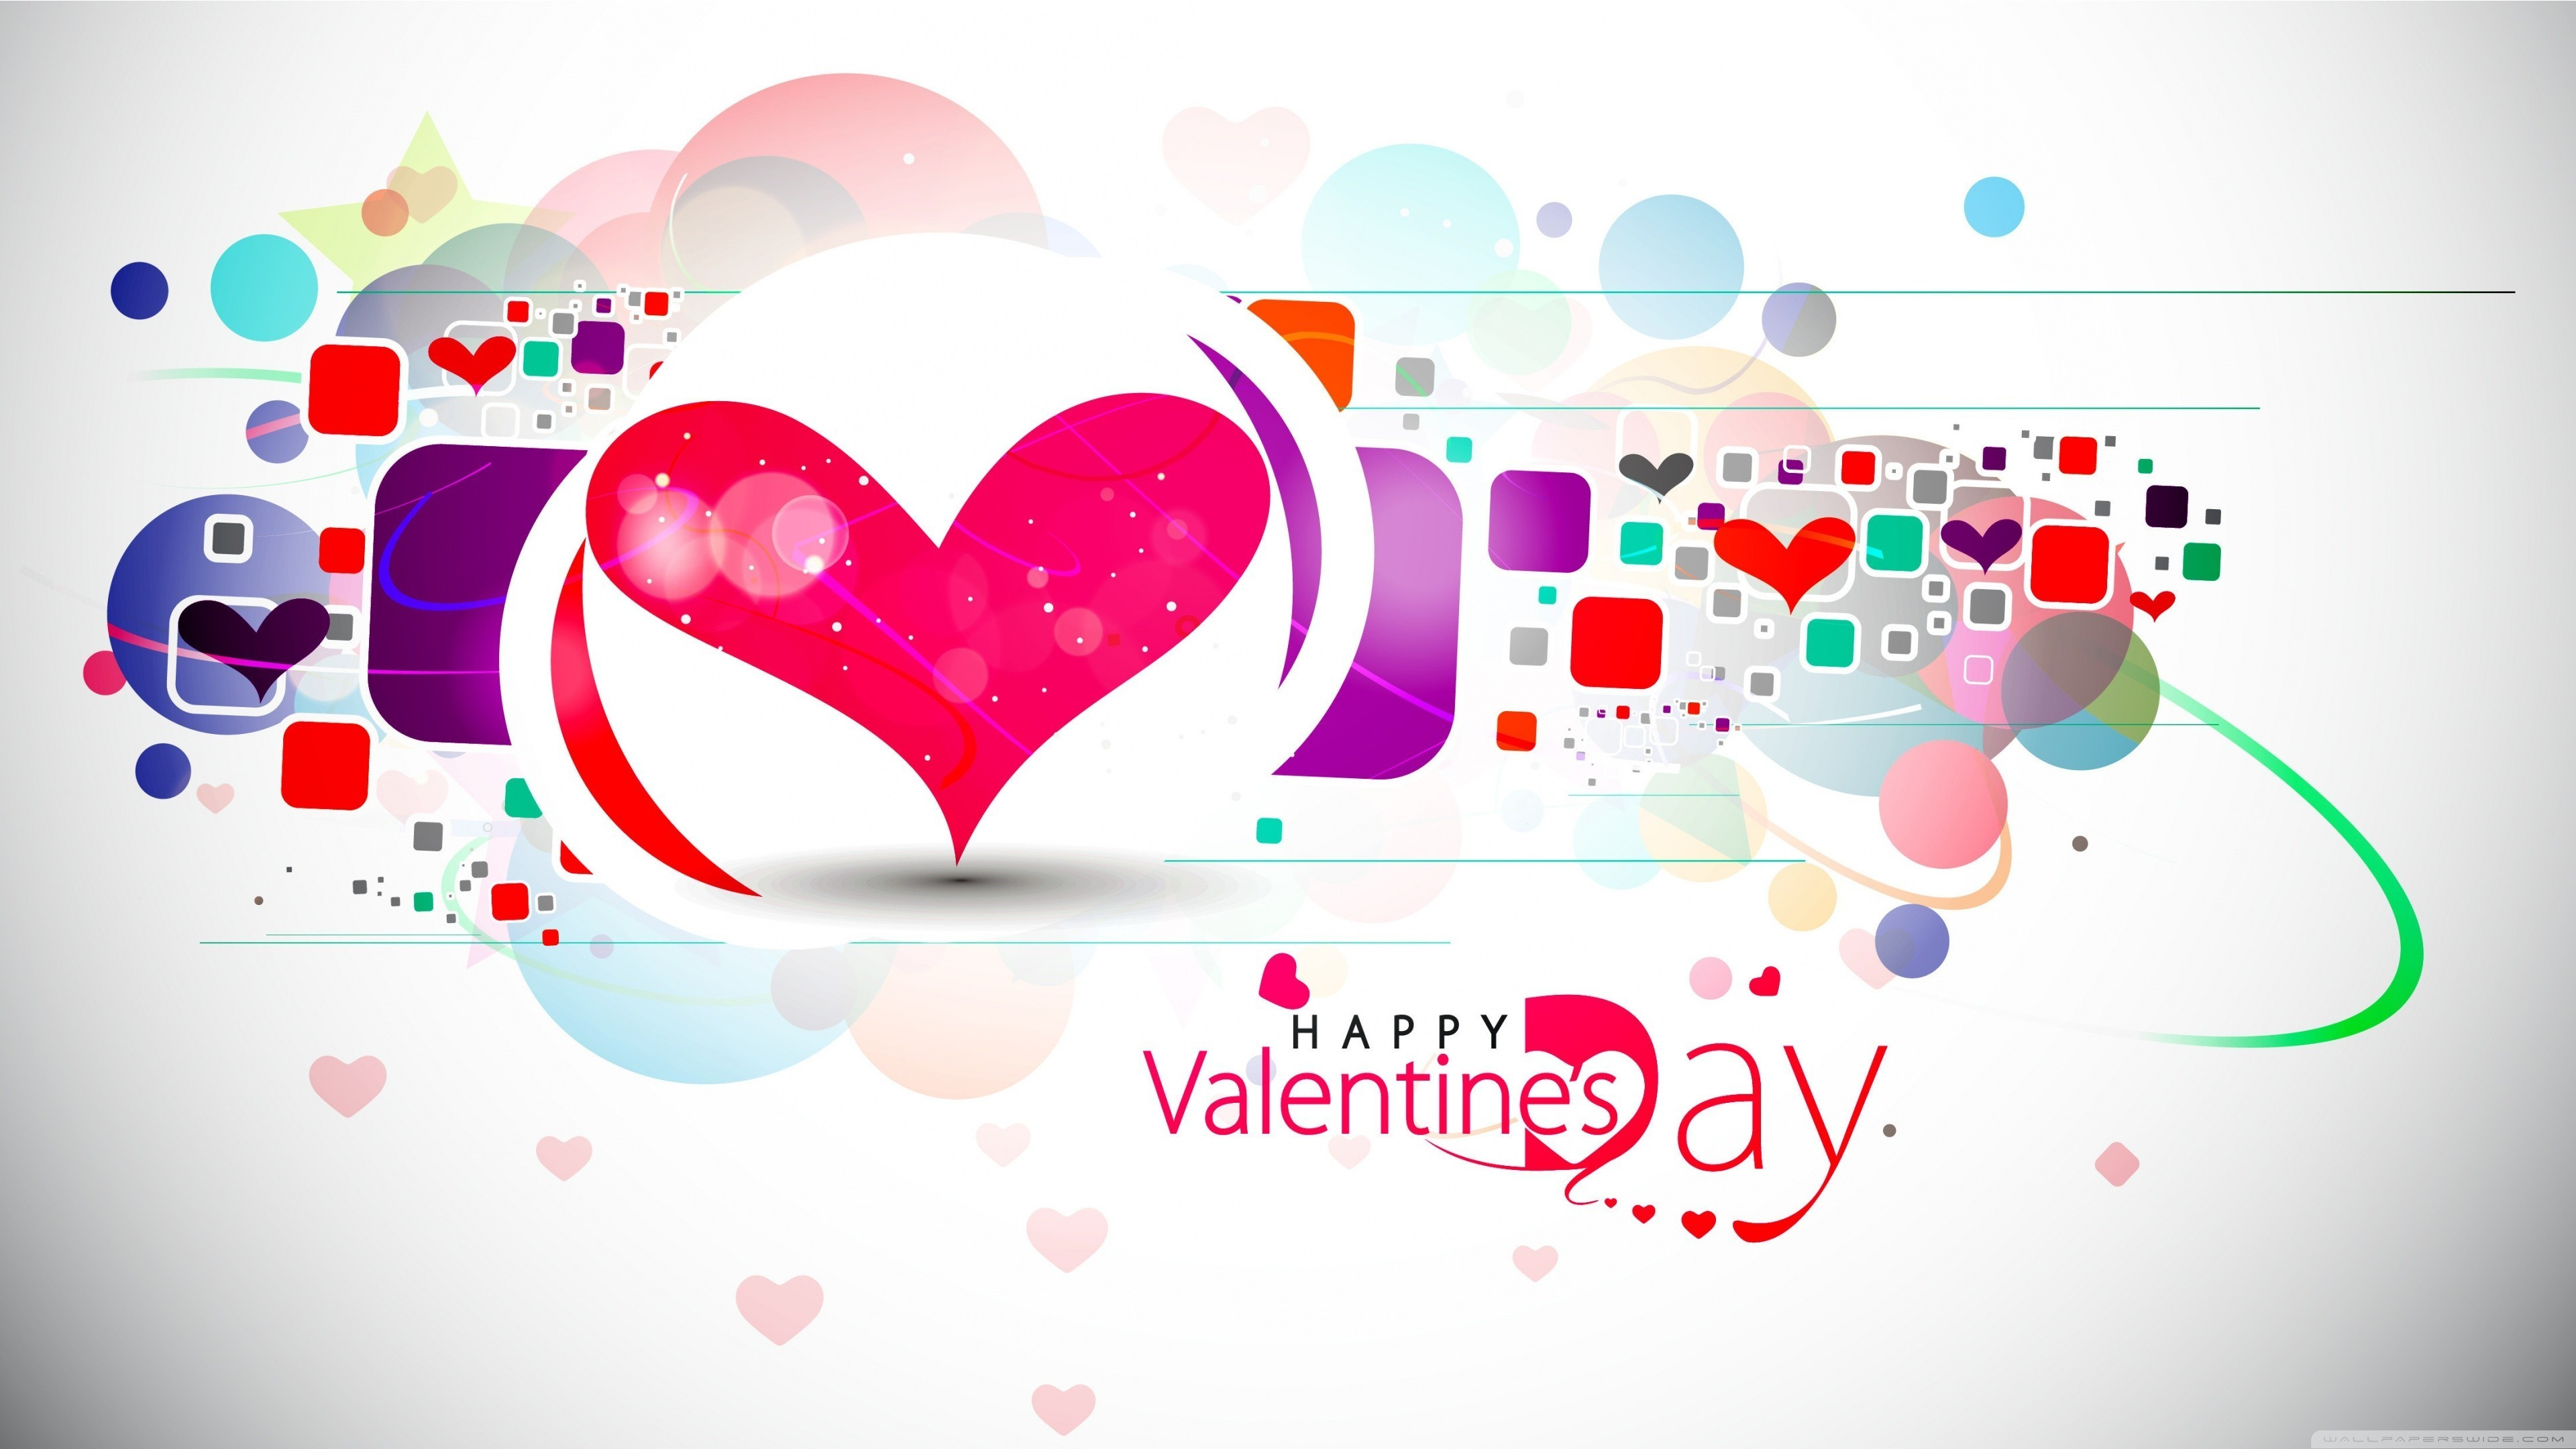 3840x2160 Valentines day abstract happy wallpaper